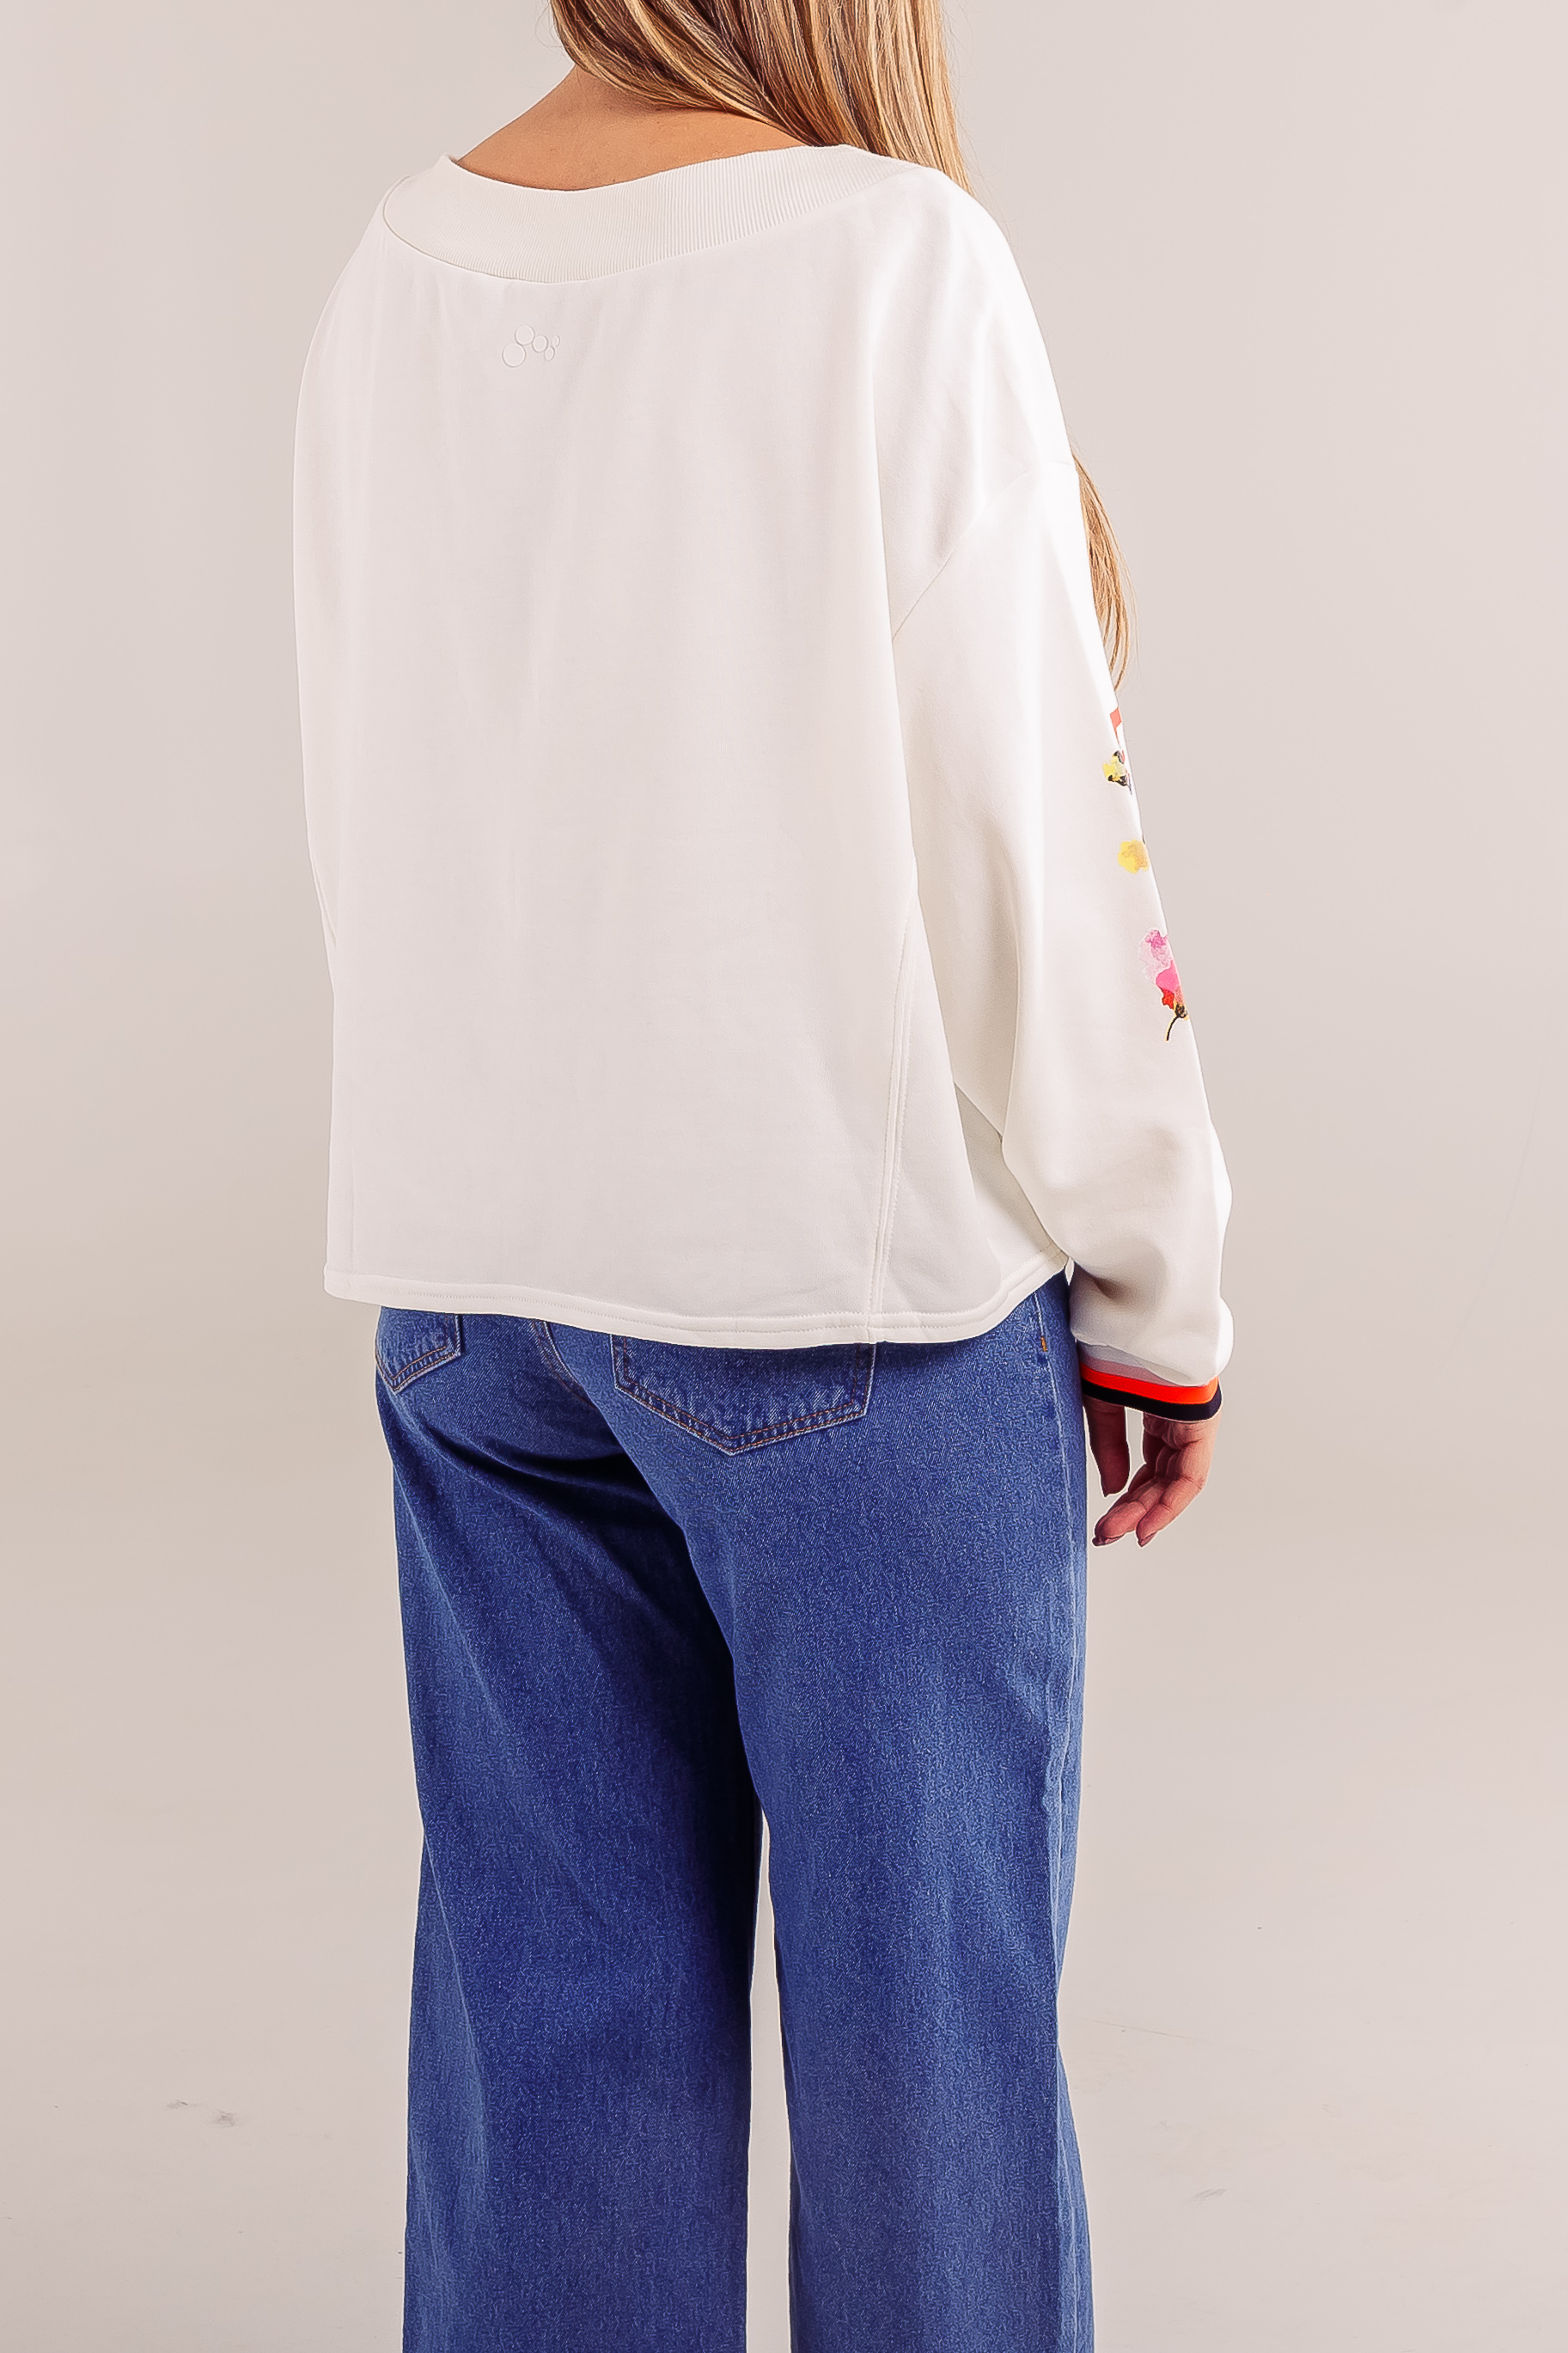 Hanorac ONLY Casual (5392) photo 0